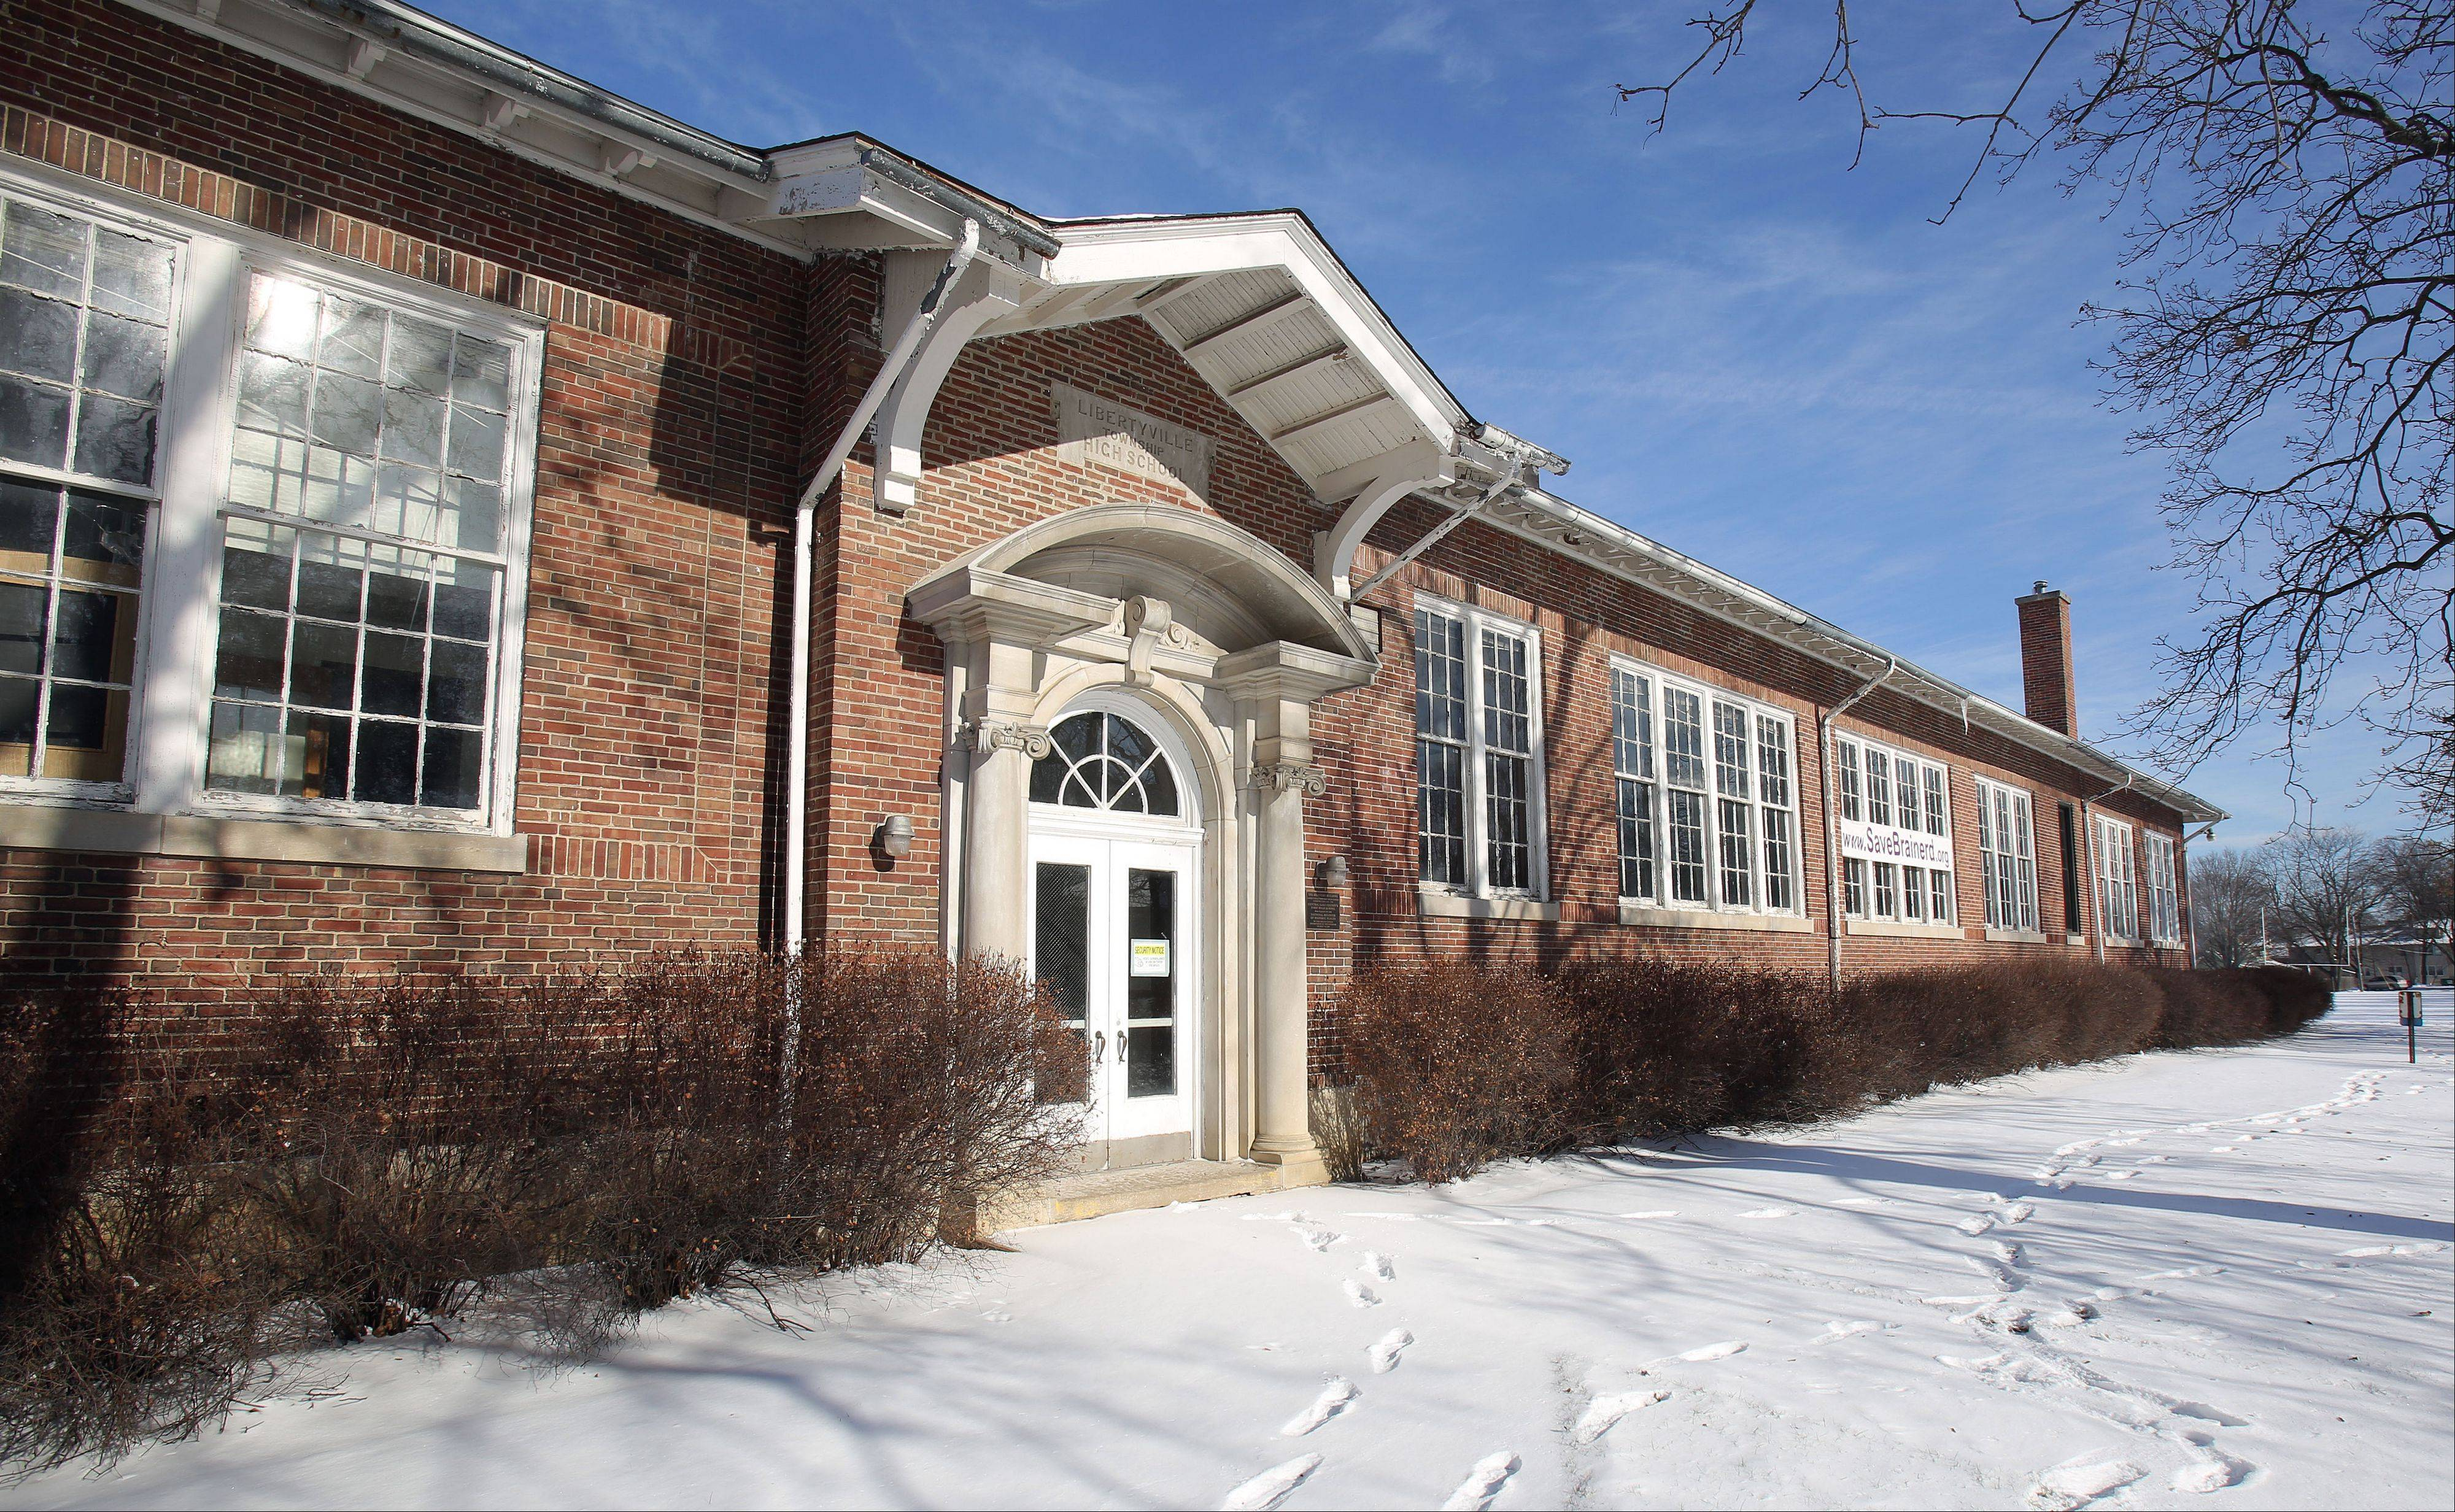 Libertyville voters will be asked in March whether they would approve a tax hike to pay for up to $11.5 million in bonds to be issued by the village to rehab the former Libertyville High School into a community center.